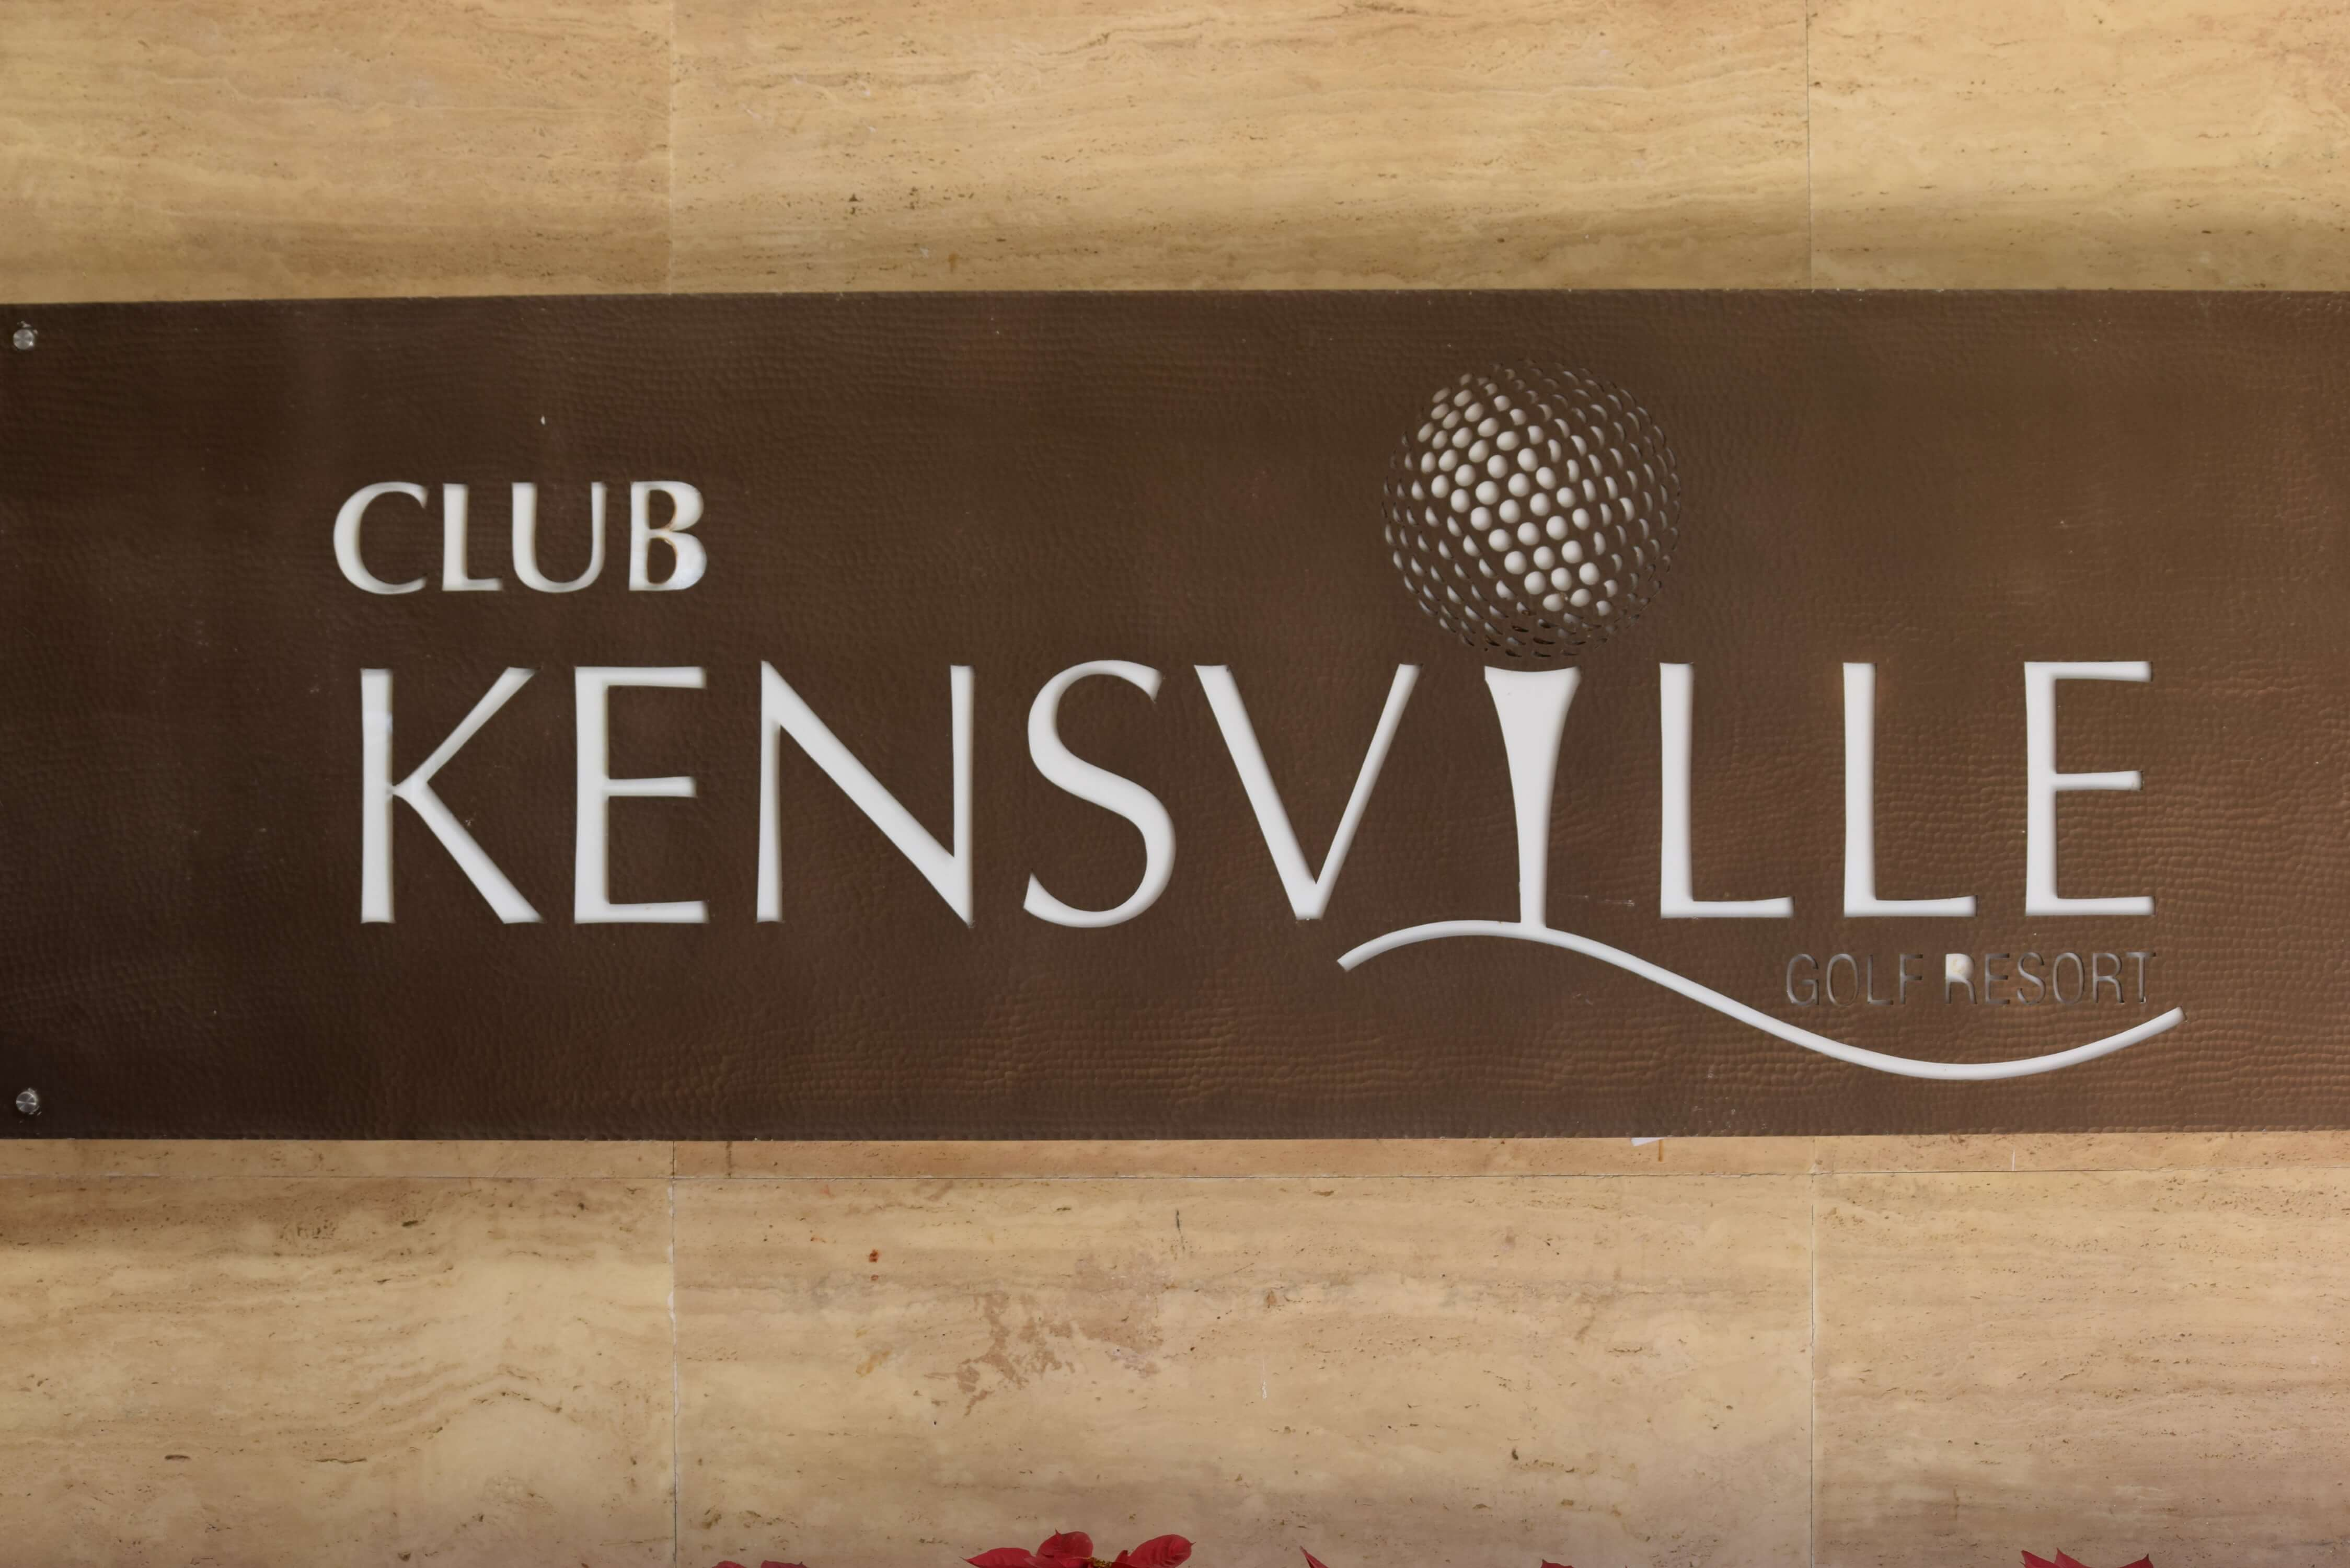 Kensville Golf & Country Club